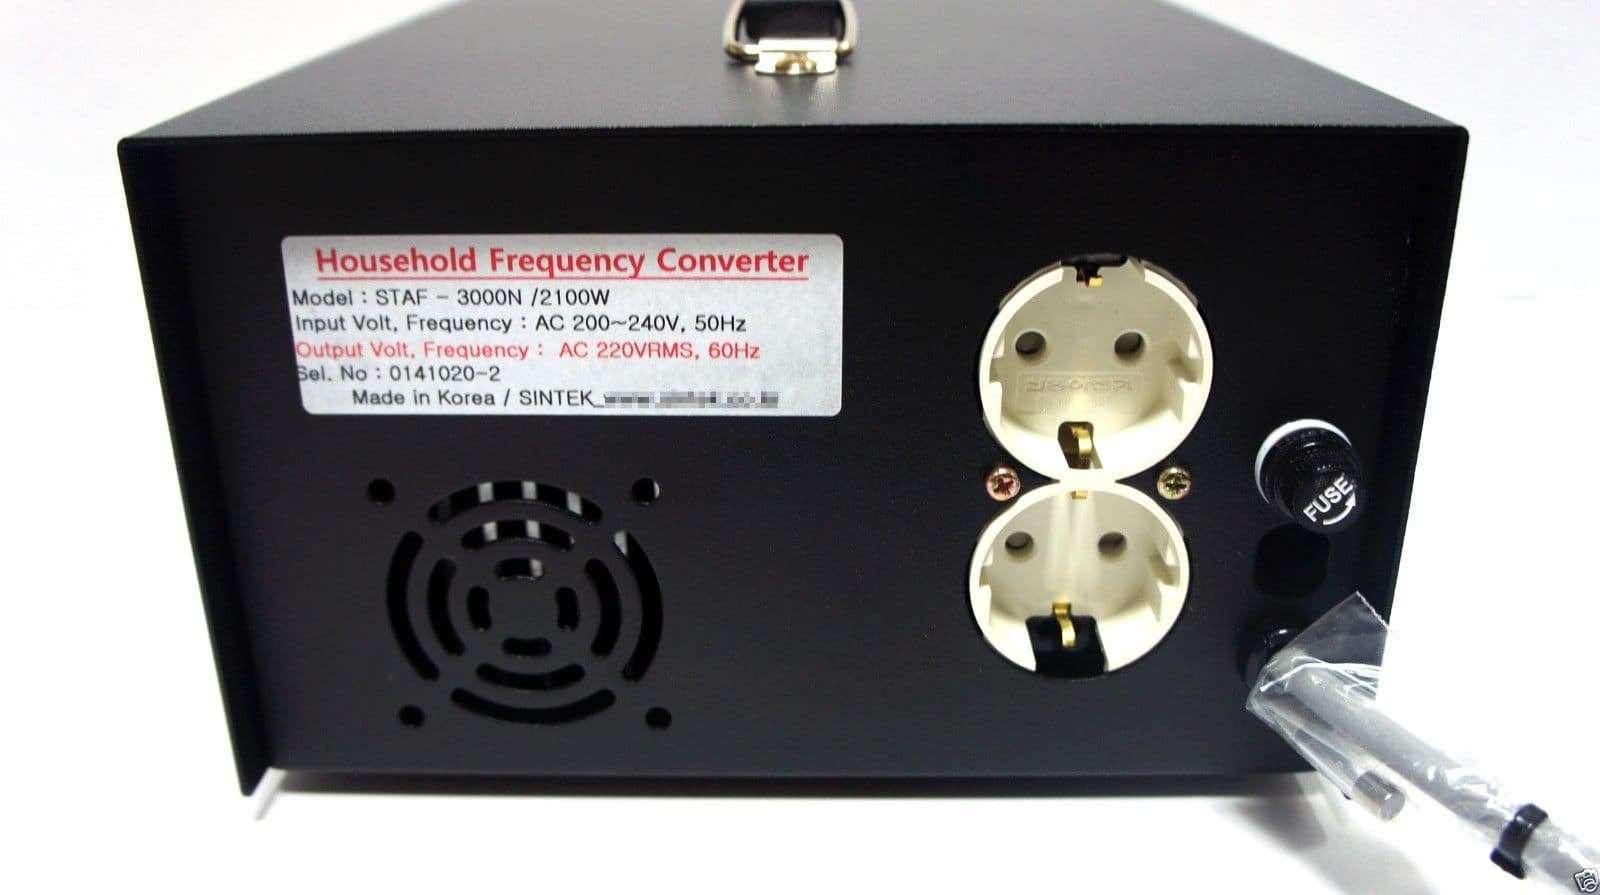 Household Frequency Converter